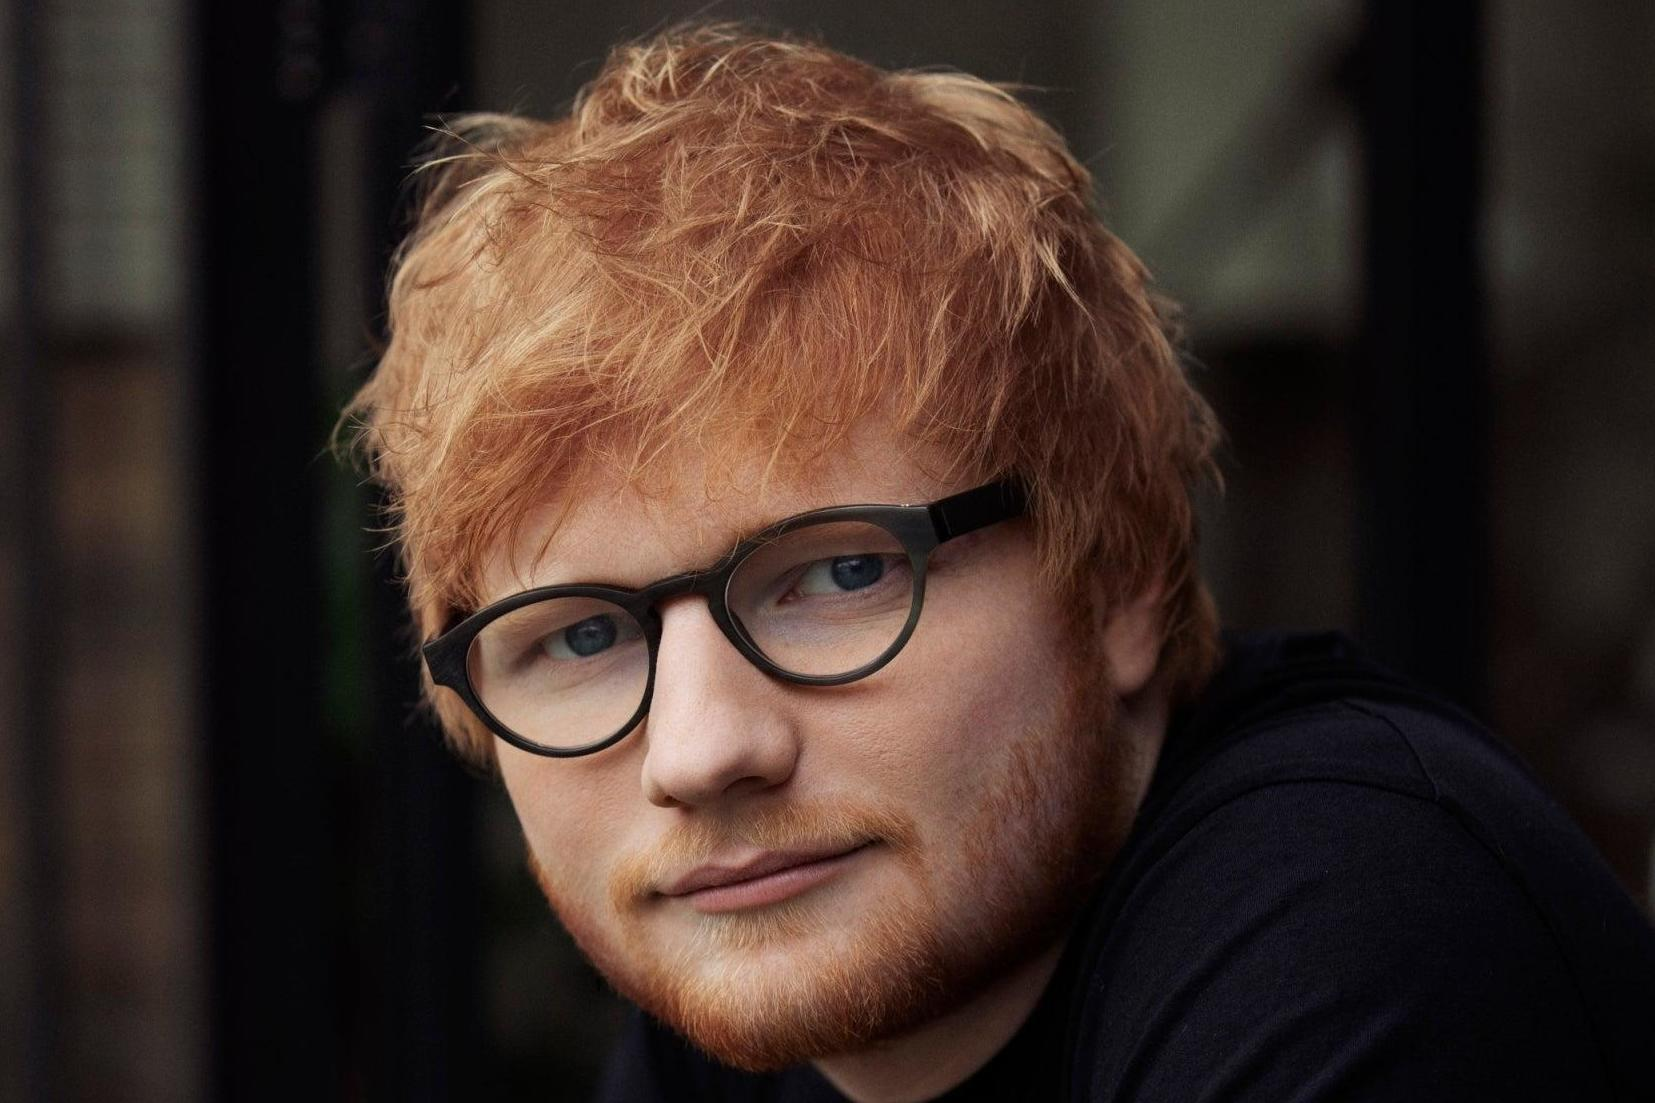 Ed Sheeran lined up for the next Bond movie